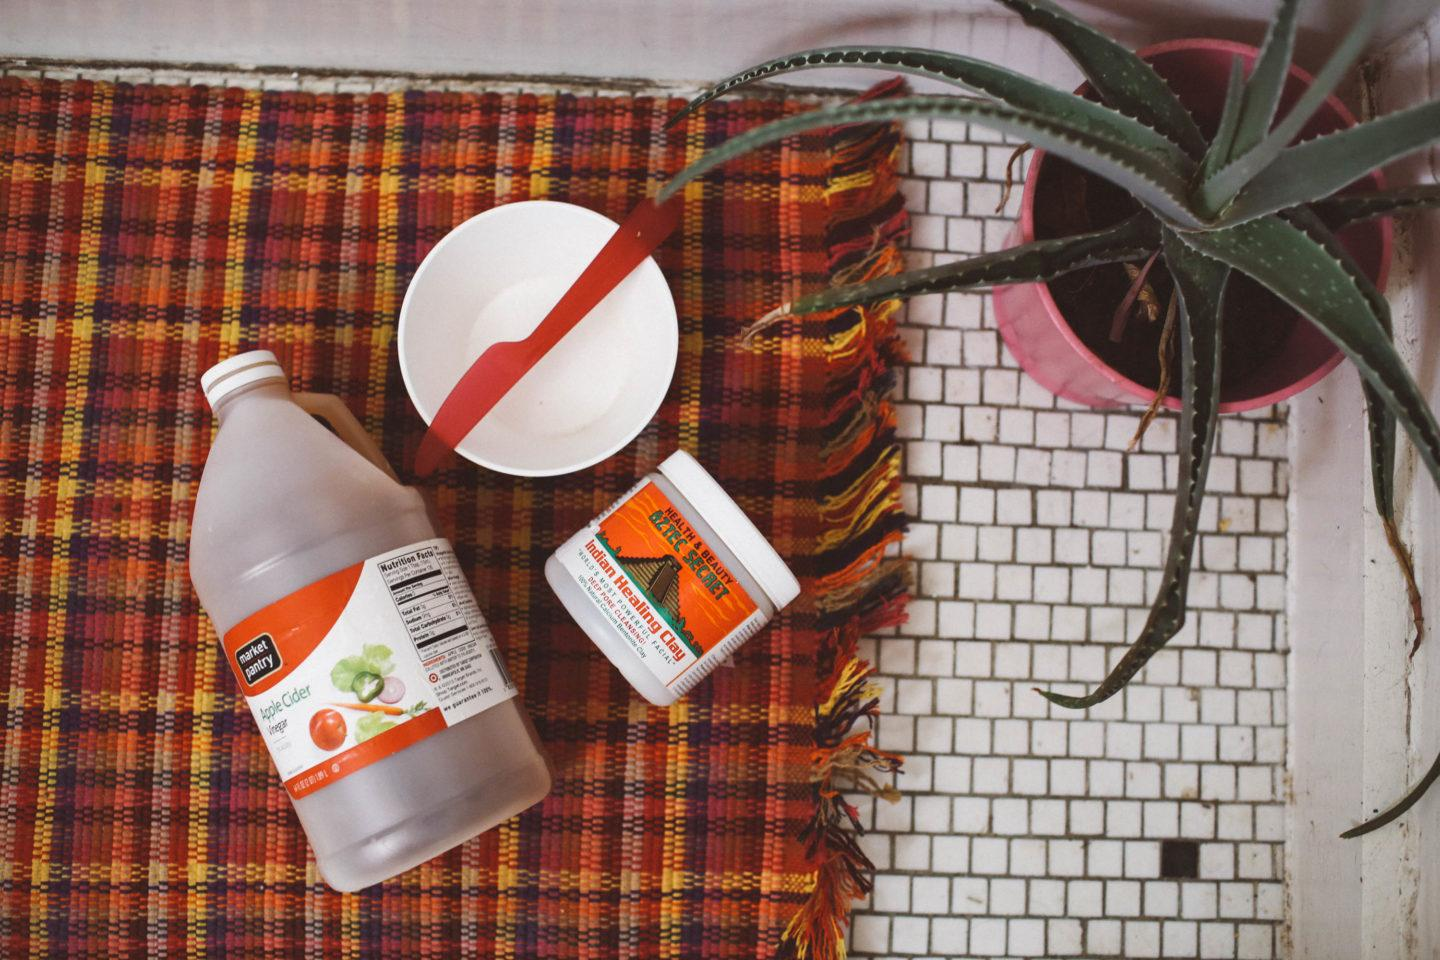 Aztec Secret Indian Healing Clay Review – Does It Really Work?